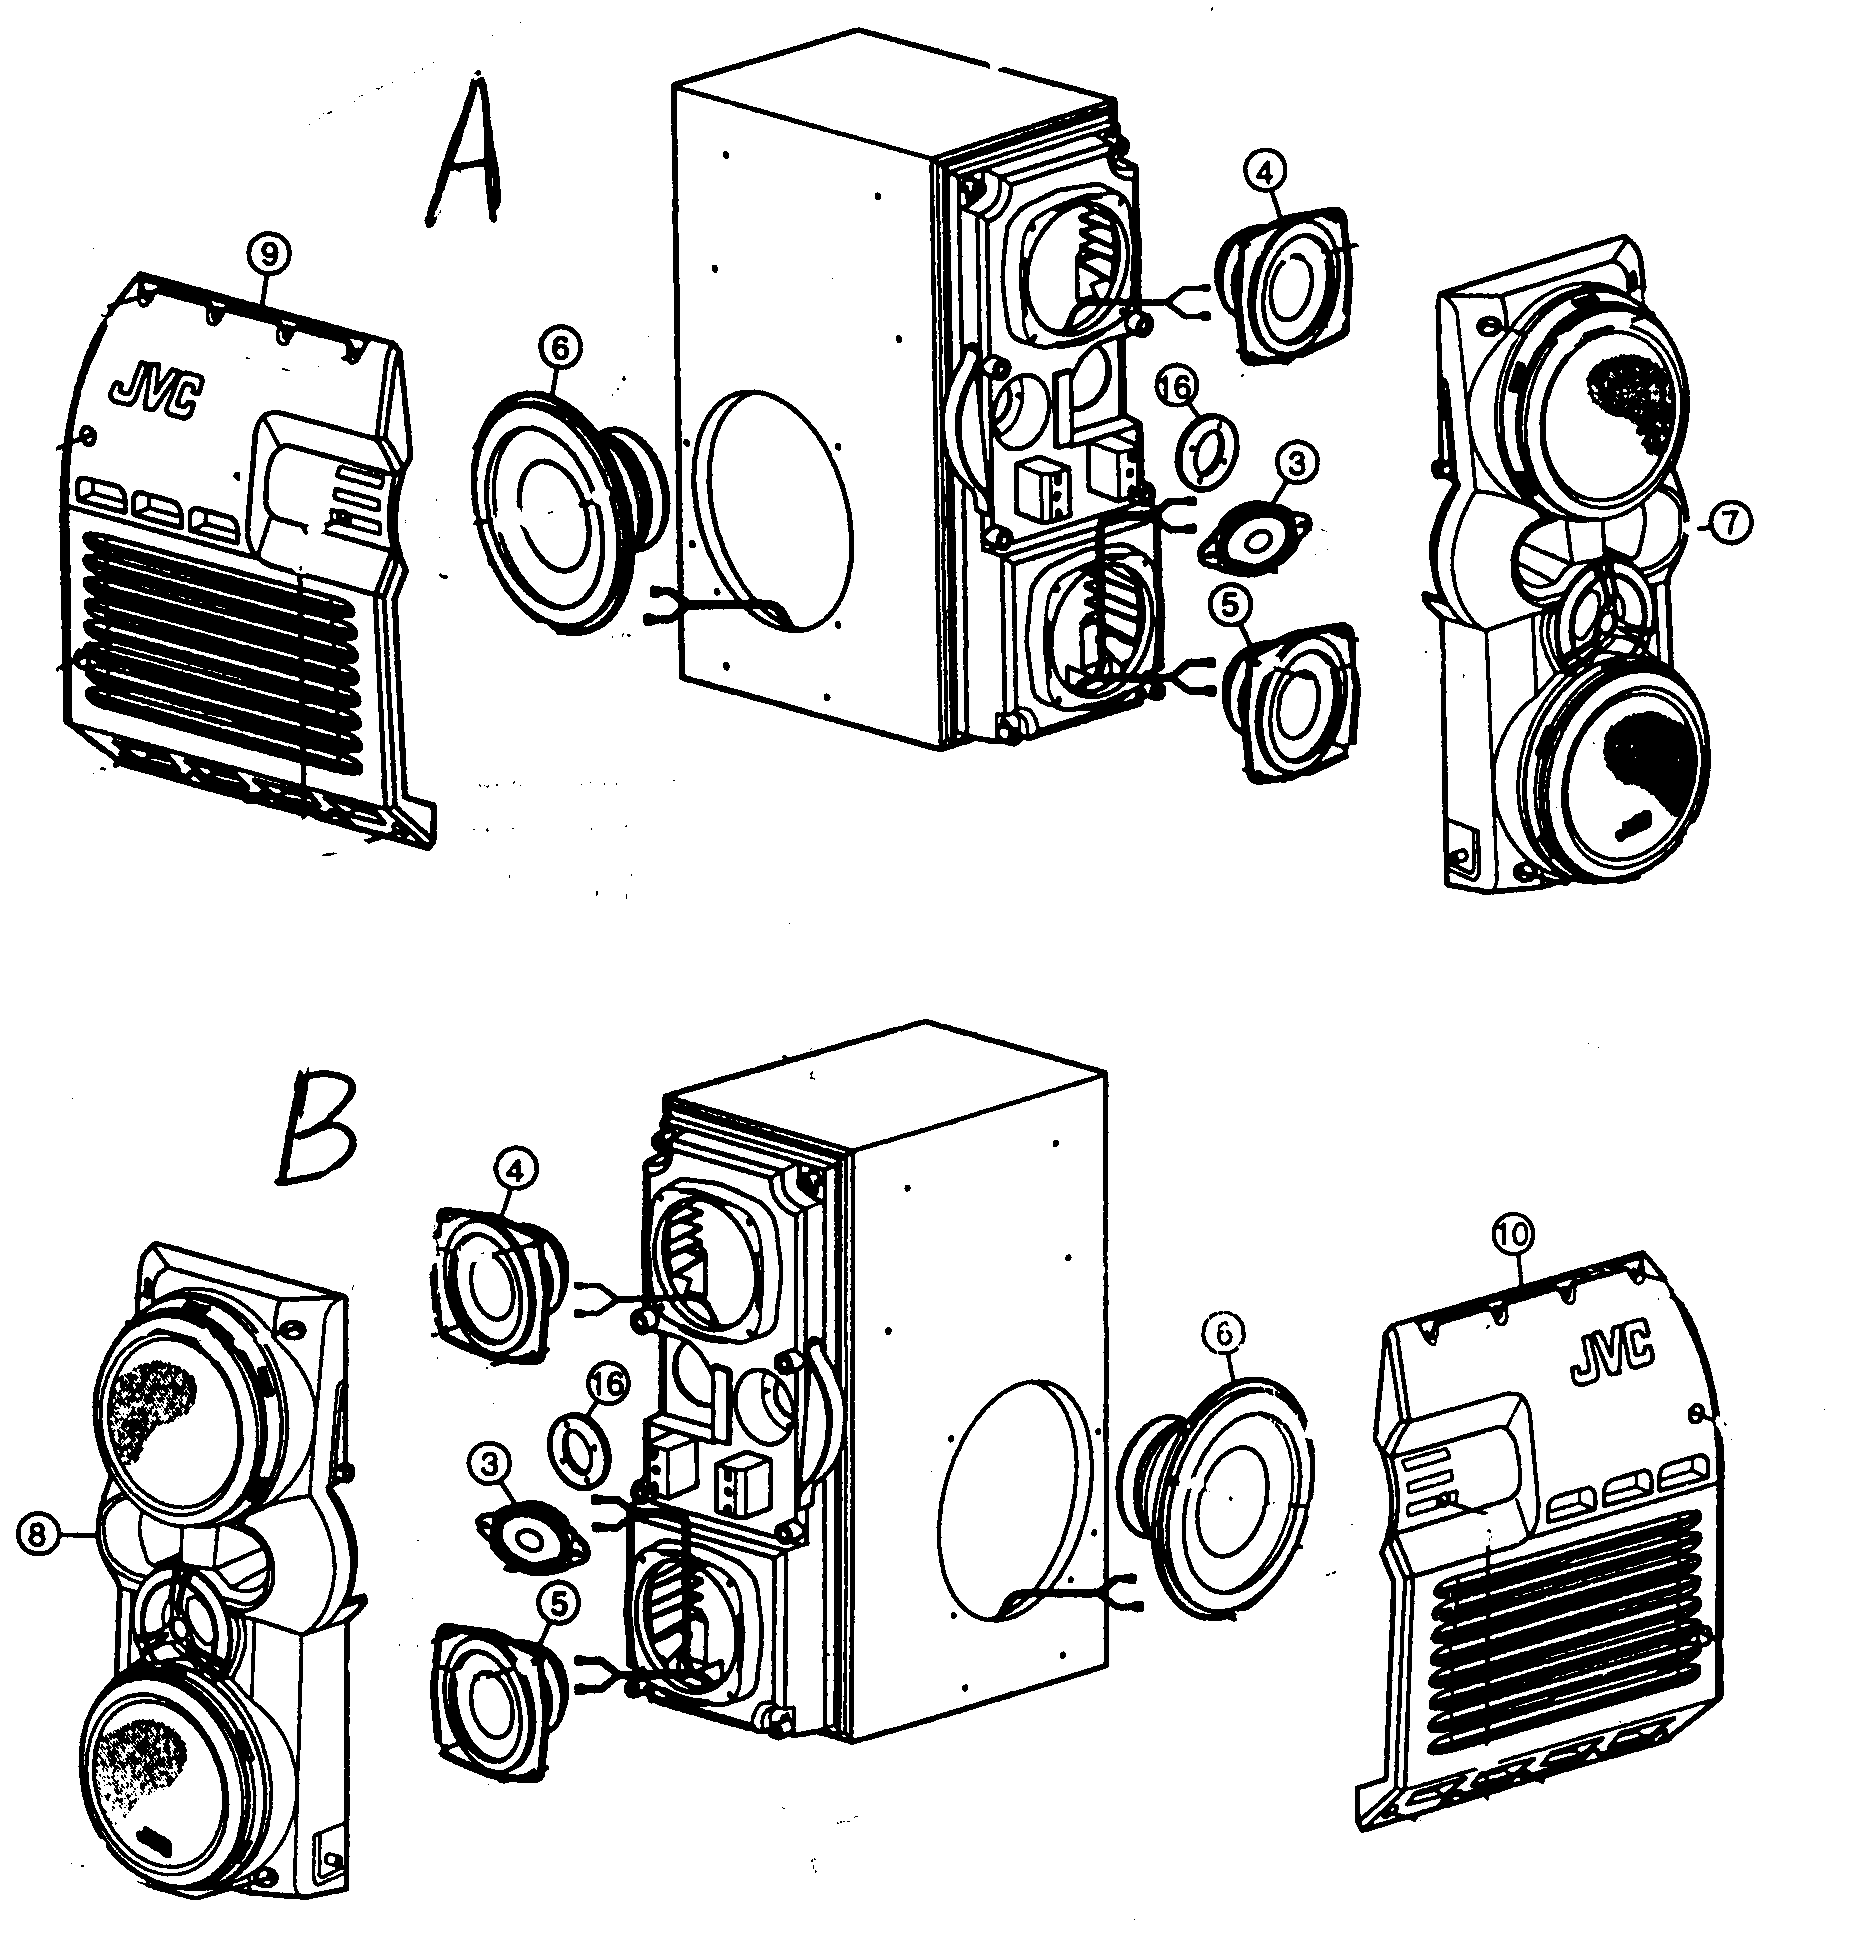 SPEAKERS Diagram & Parts List for Model hxz1 Jvc-Parts